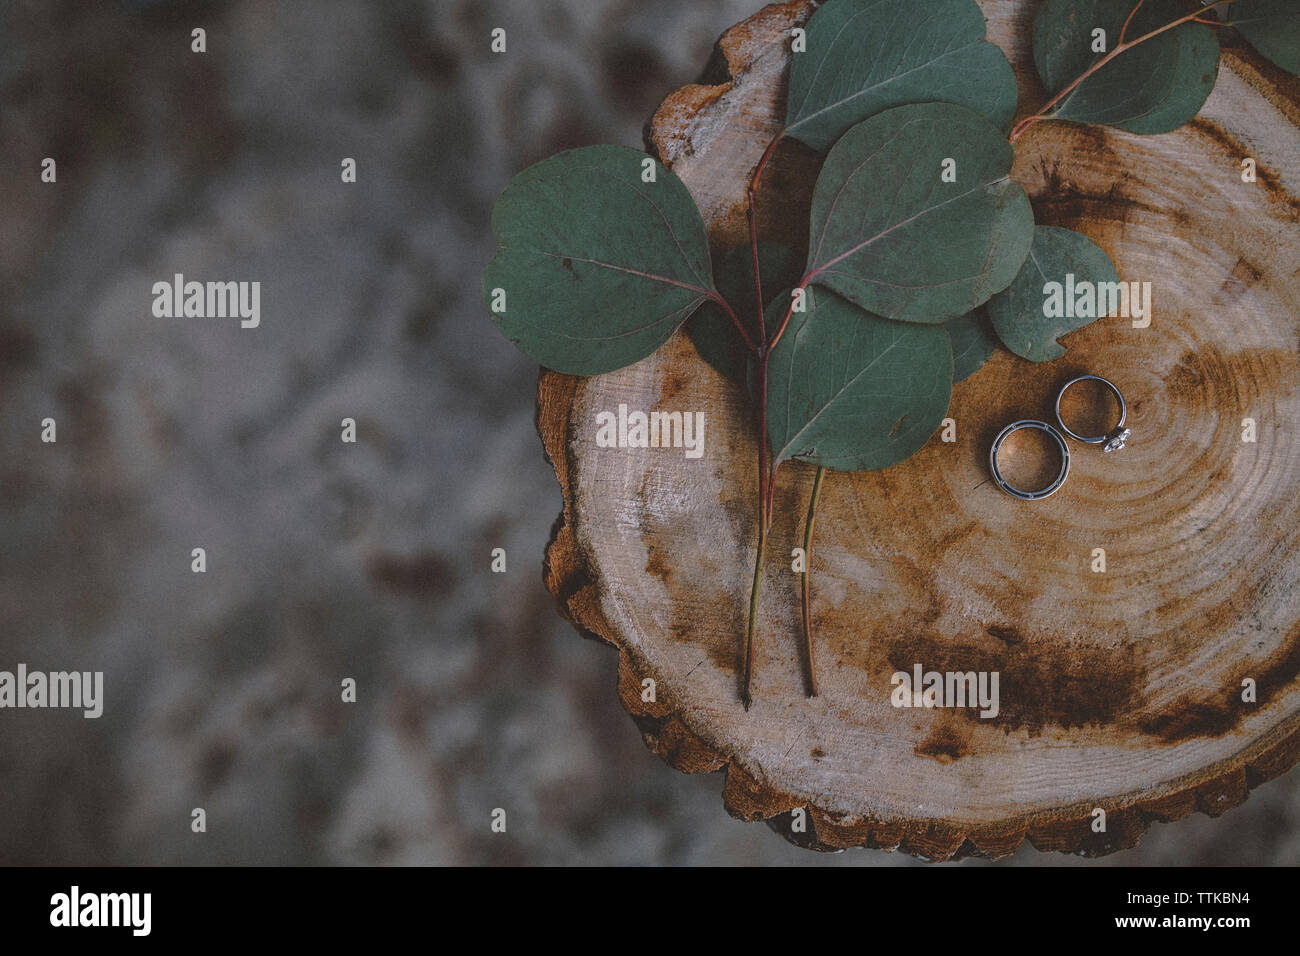 Overhead view of wedding rings with leaves on tree stump Stock Photo